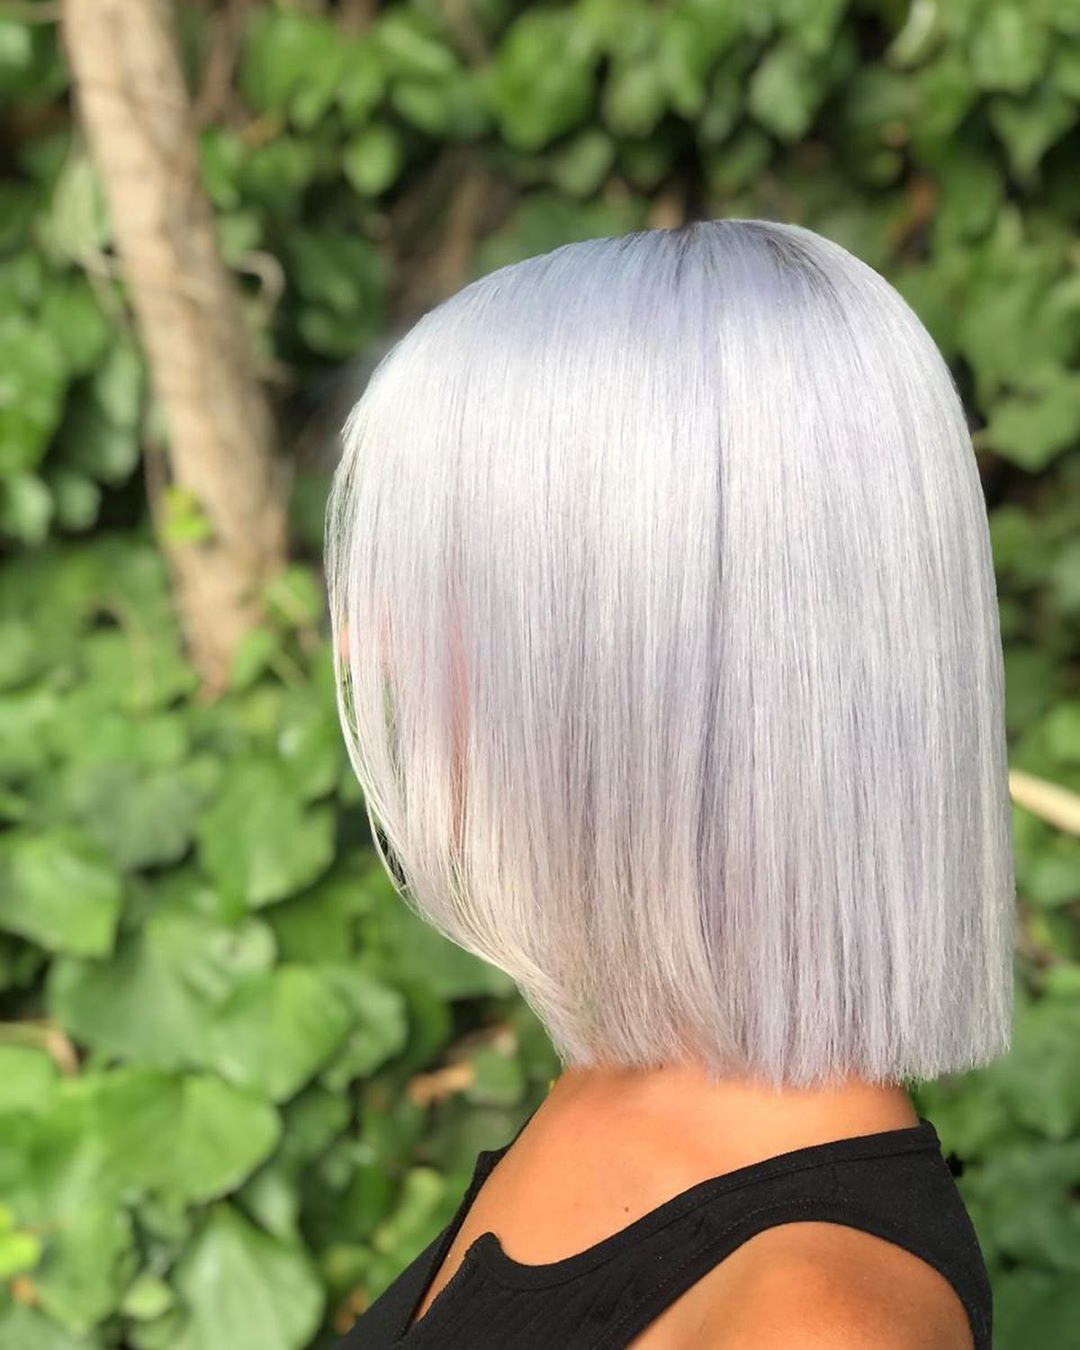 40+ Silver Hair Color Ideas & 2019 Trends: Highlights Intended For Dusty Lavender Short Shag Haircuts (View 7 of 20)